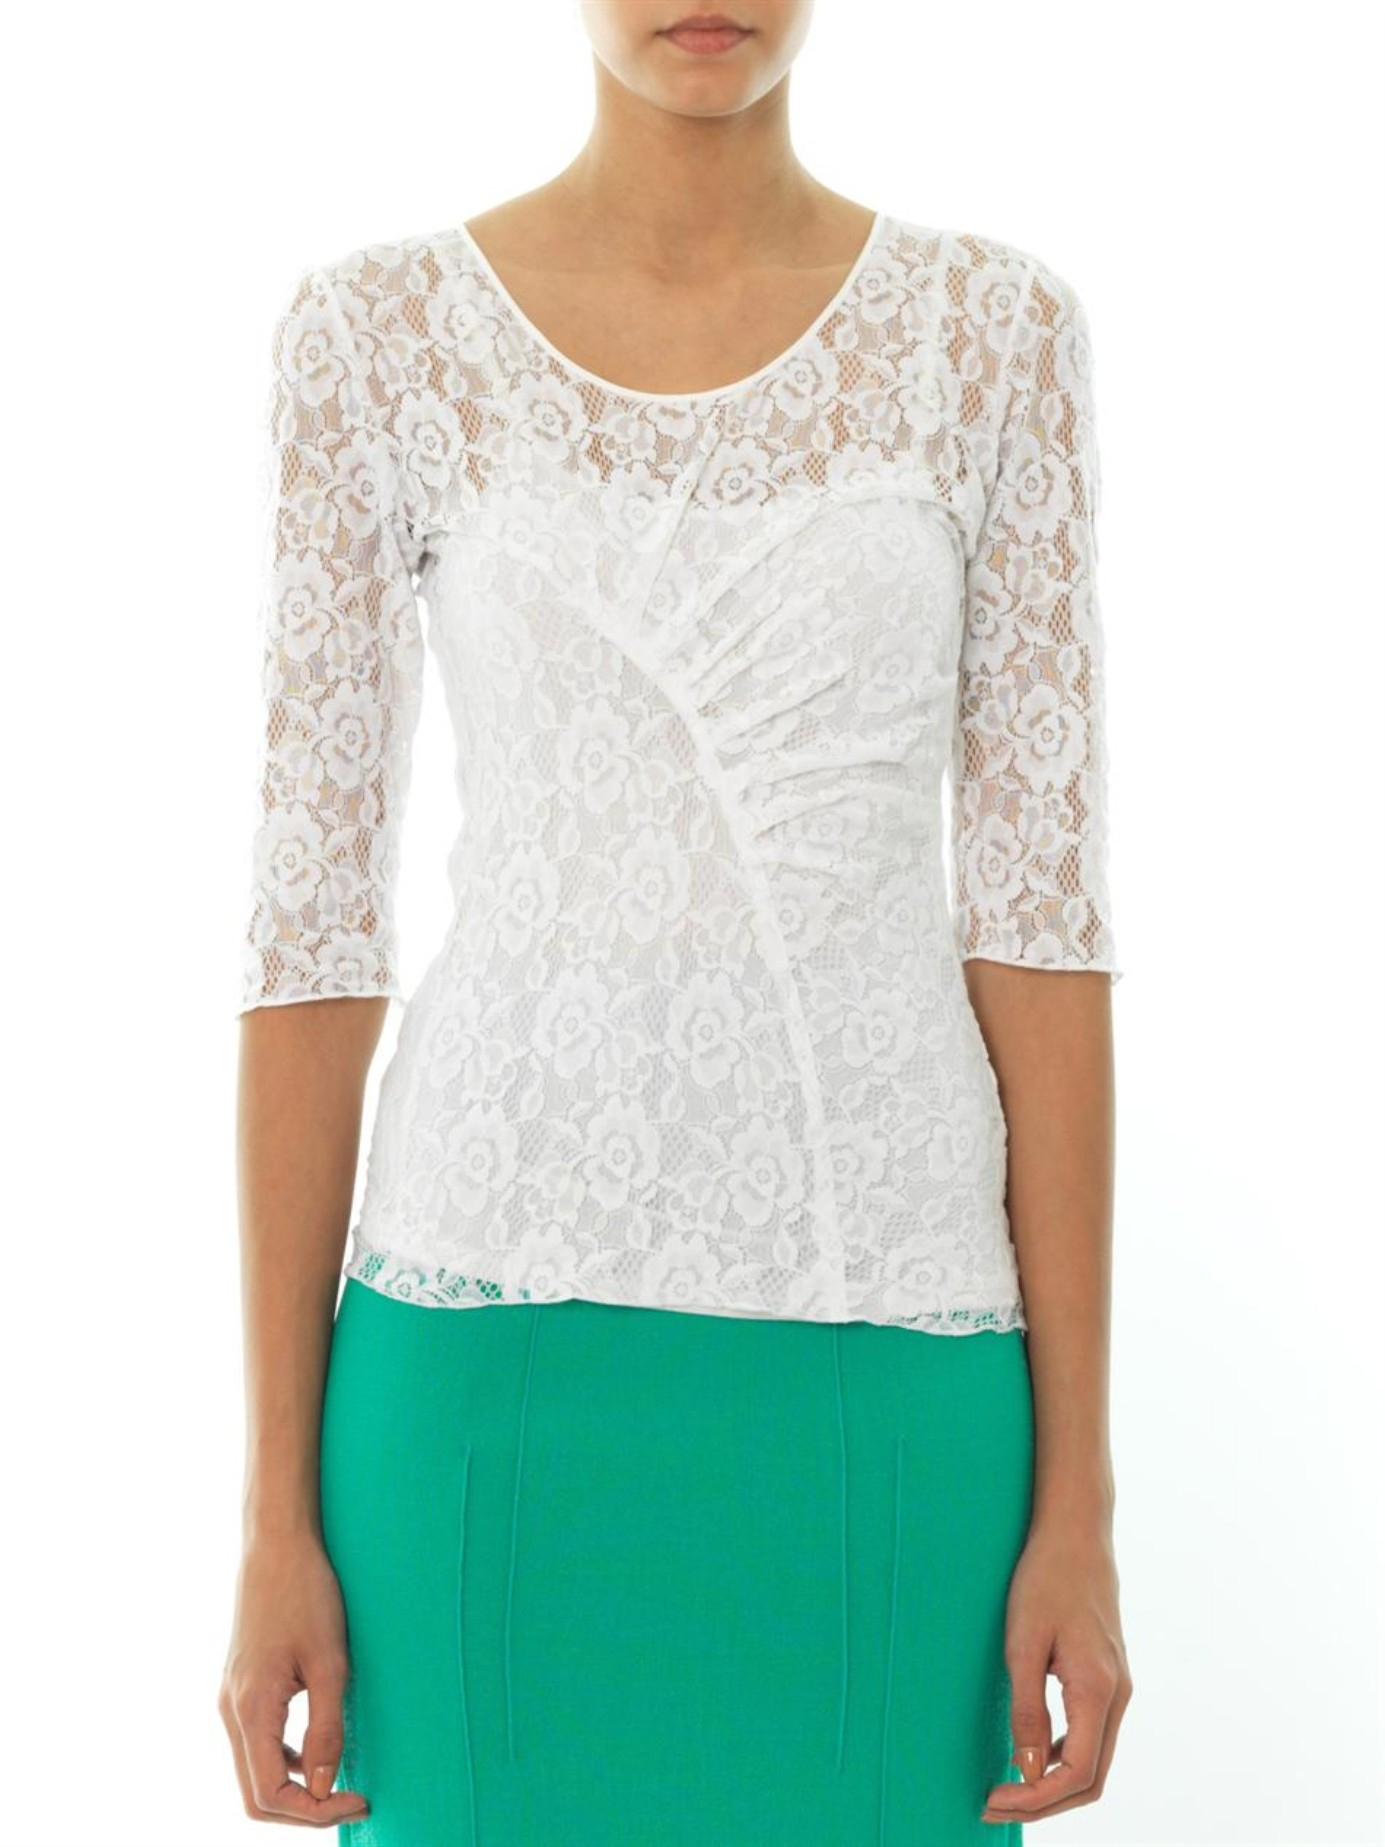 Nina ricci round neck sheer lace top in white lyst